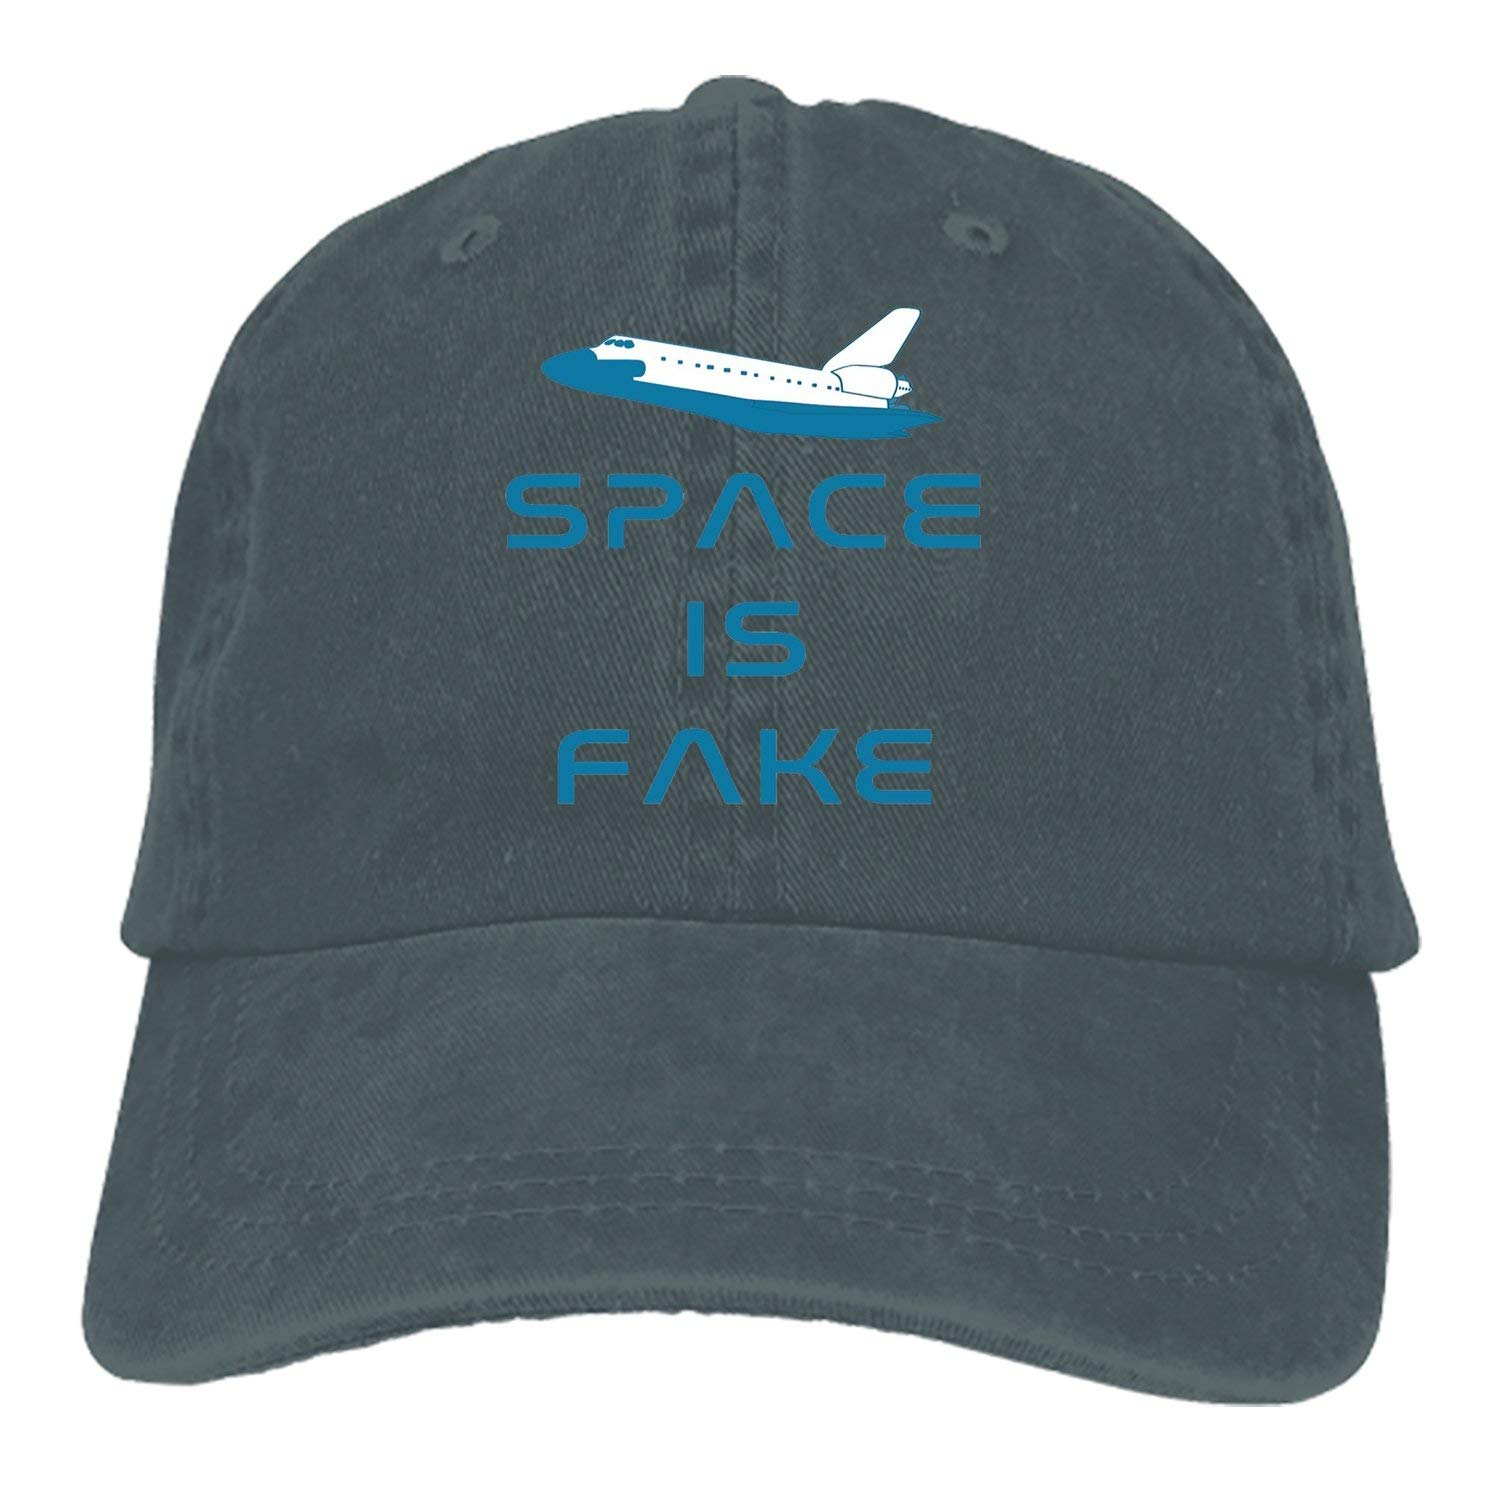 02b4450e3ed Get Quotations · Custom Space is Fake Classic Cotton Adjustable Baseball Cap